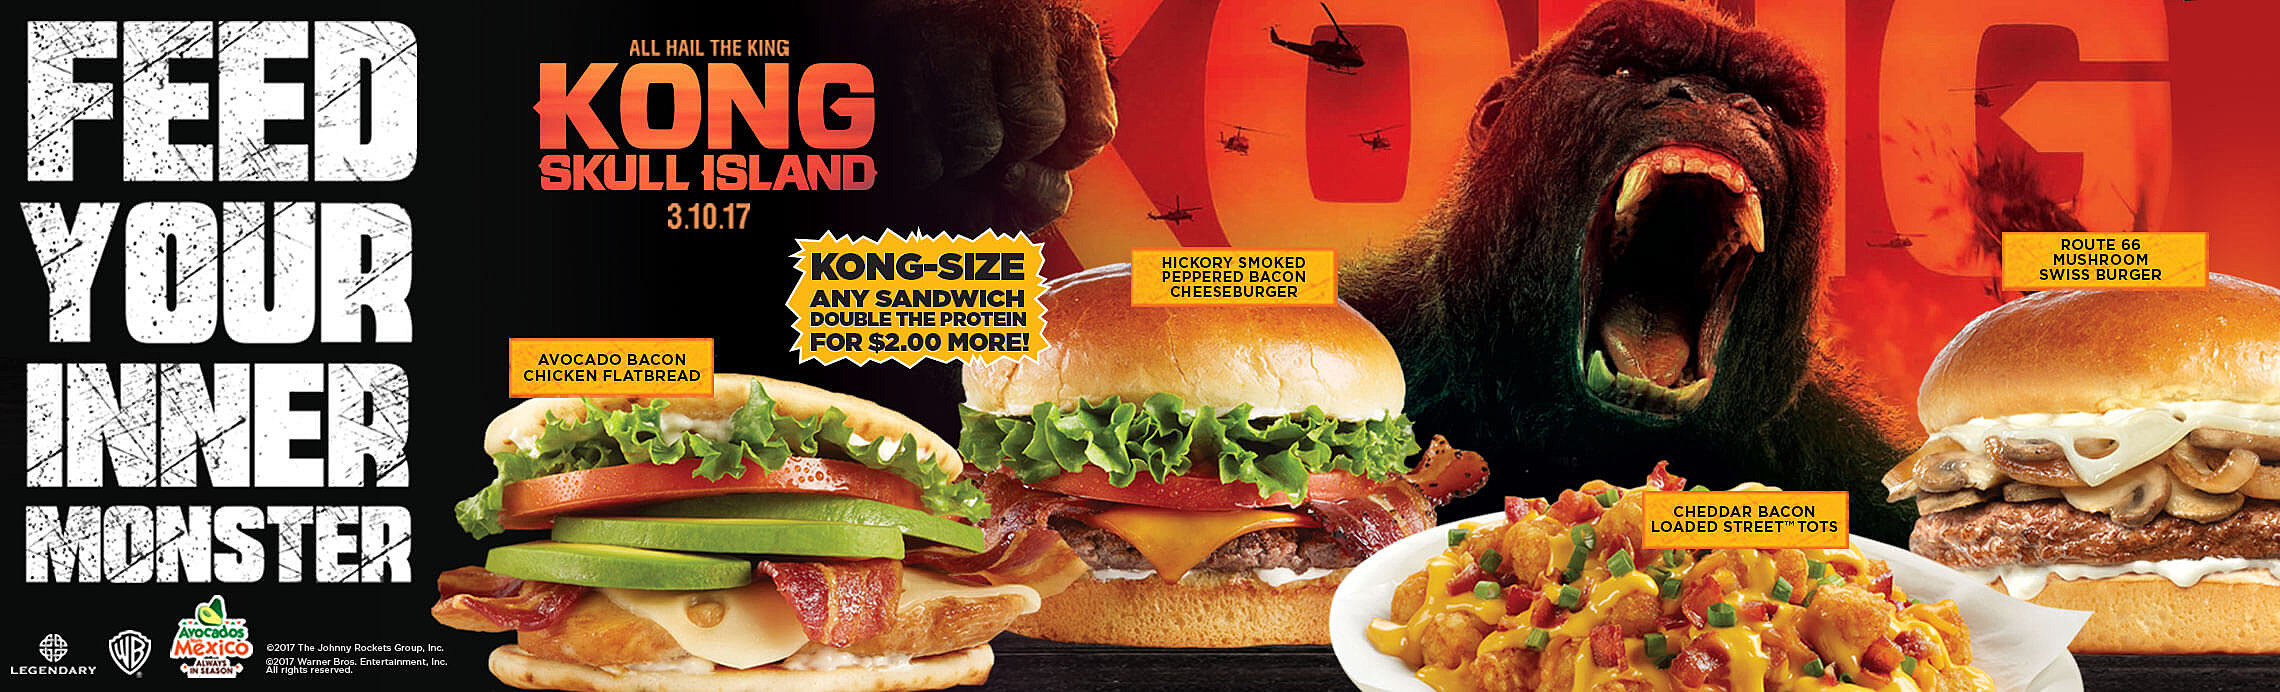 hong kong burger king swot Mcdonald's swot analysis: strengths and threats pestleanalysis contributor oct 12, 2015  such as burger king, which gets 98% of its income from us sources.